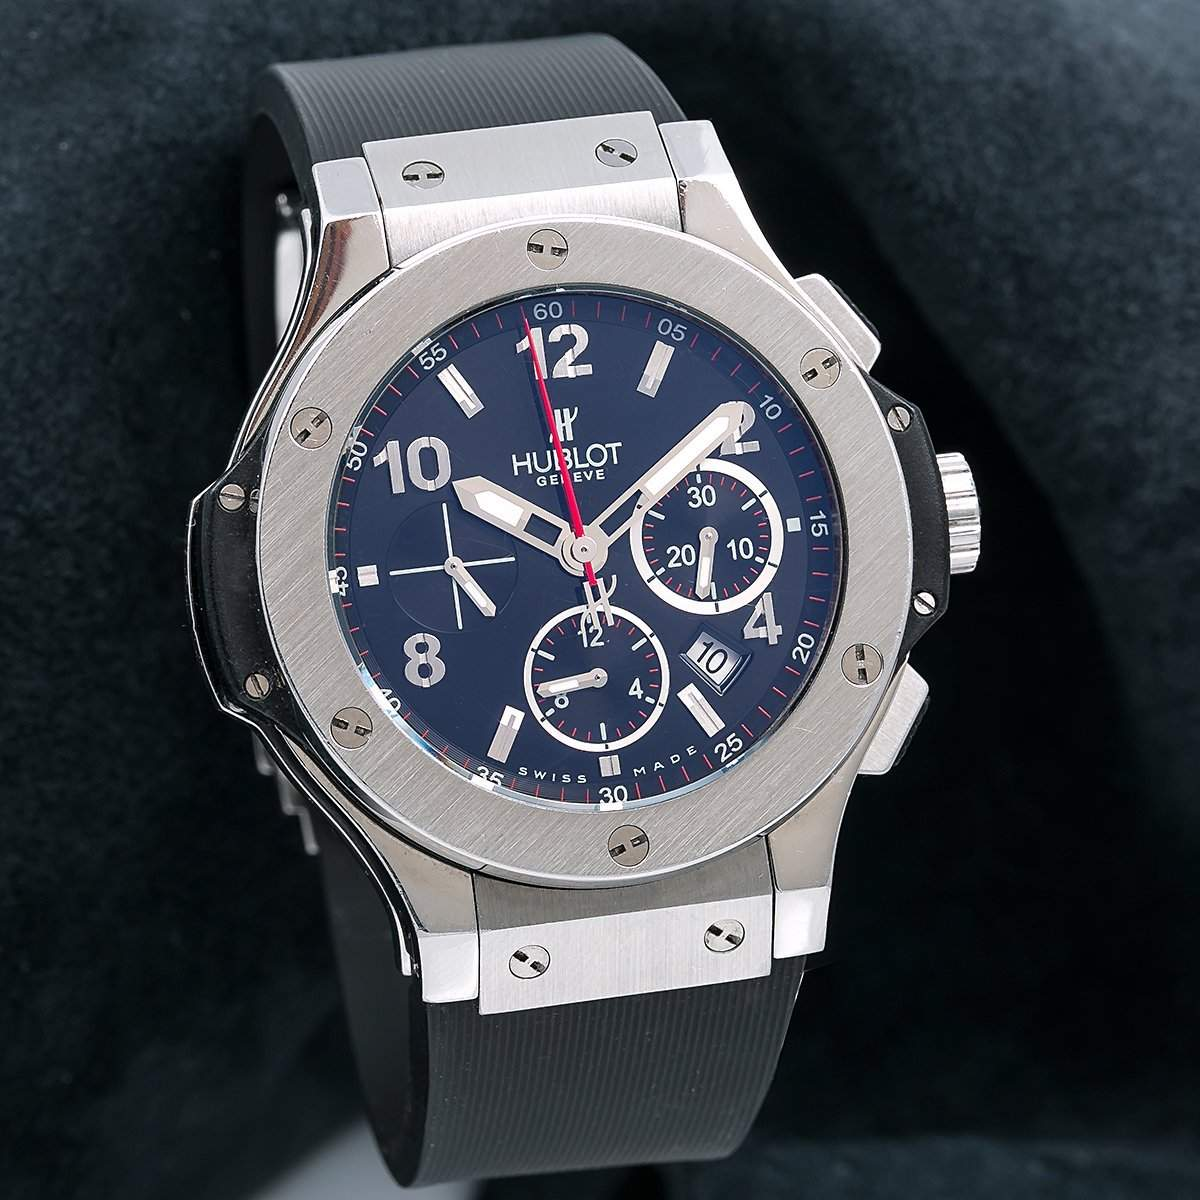 Hublot Big Bang ref. 301.SX.130.RX with a stainless steel bezel